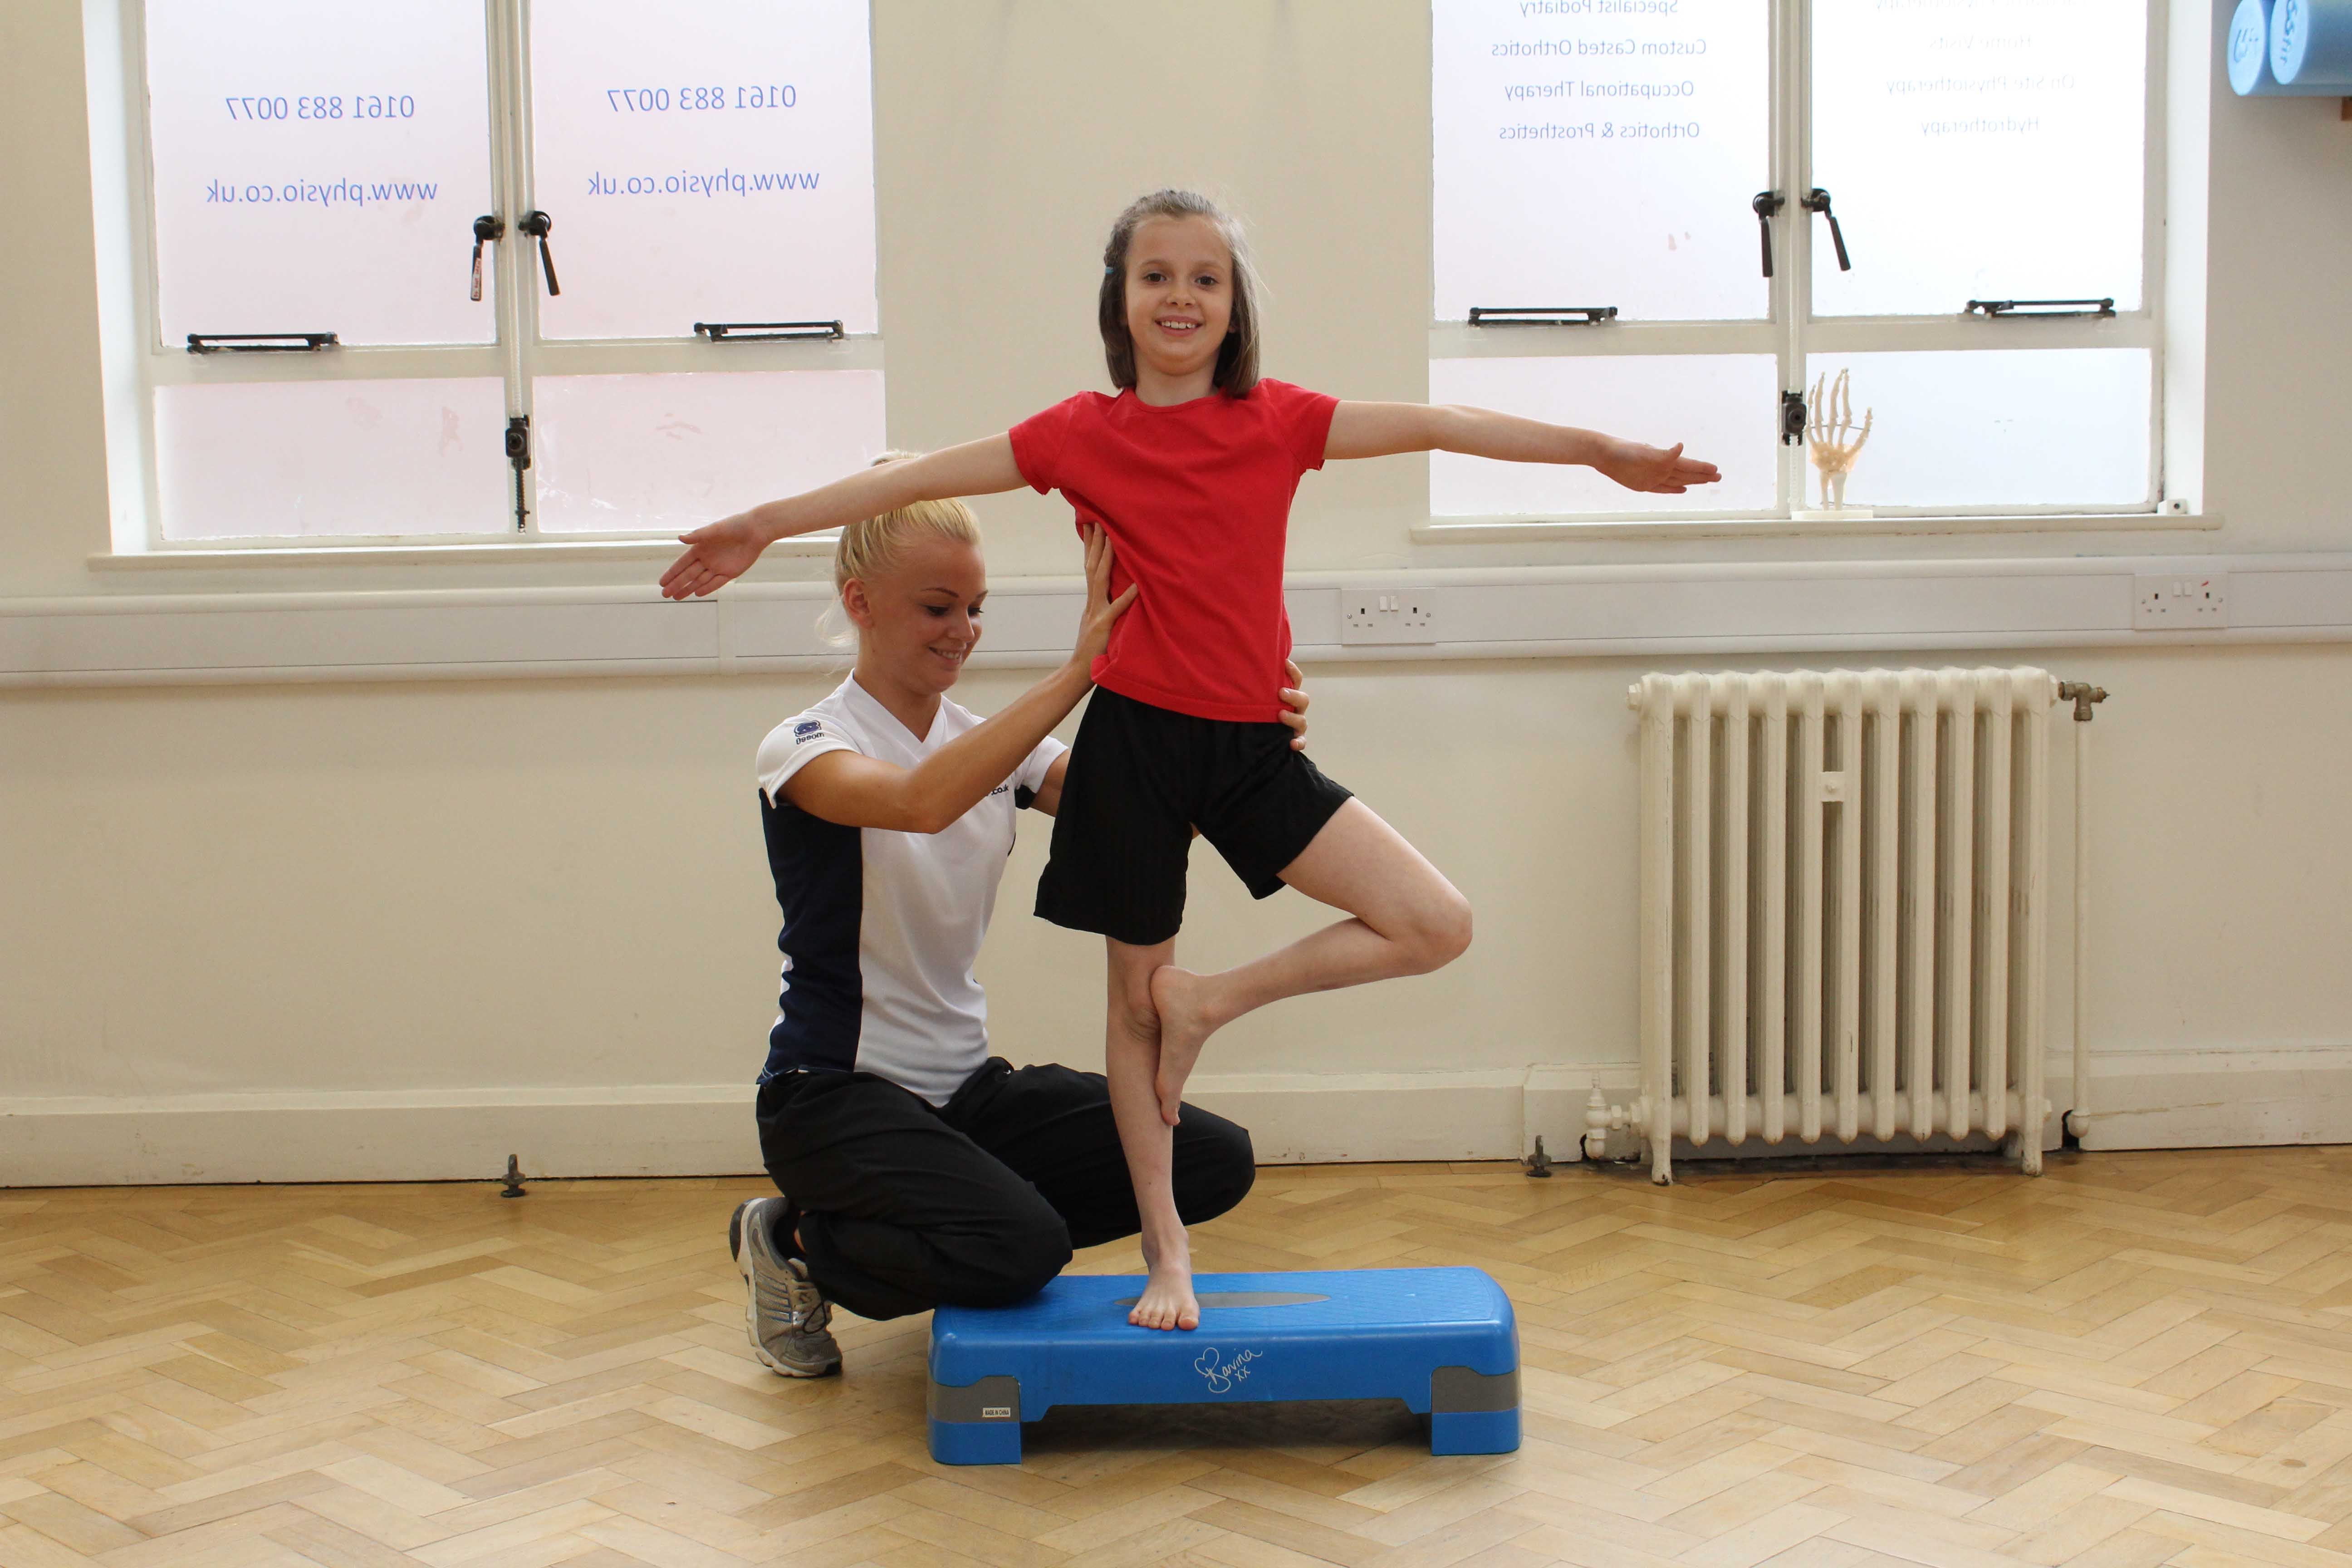 Therapist assists during progressive balance training exercises